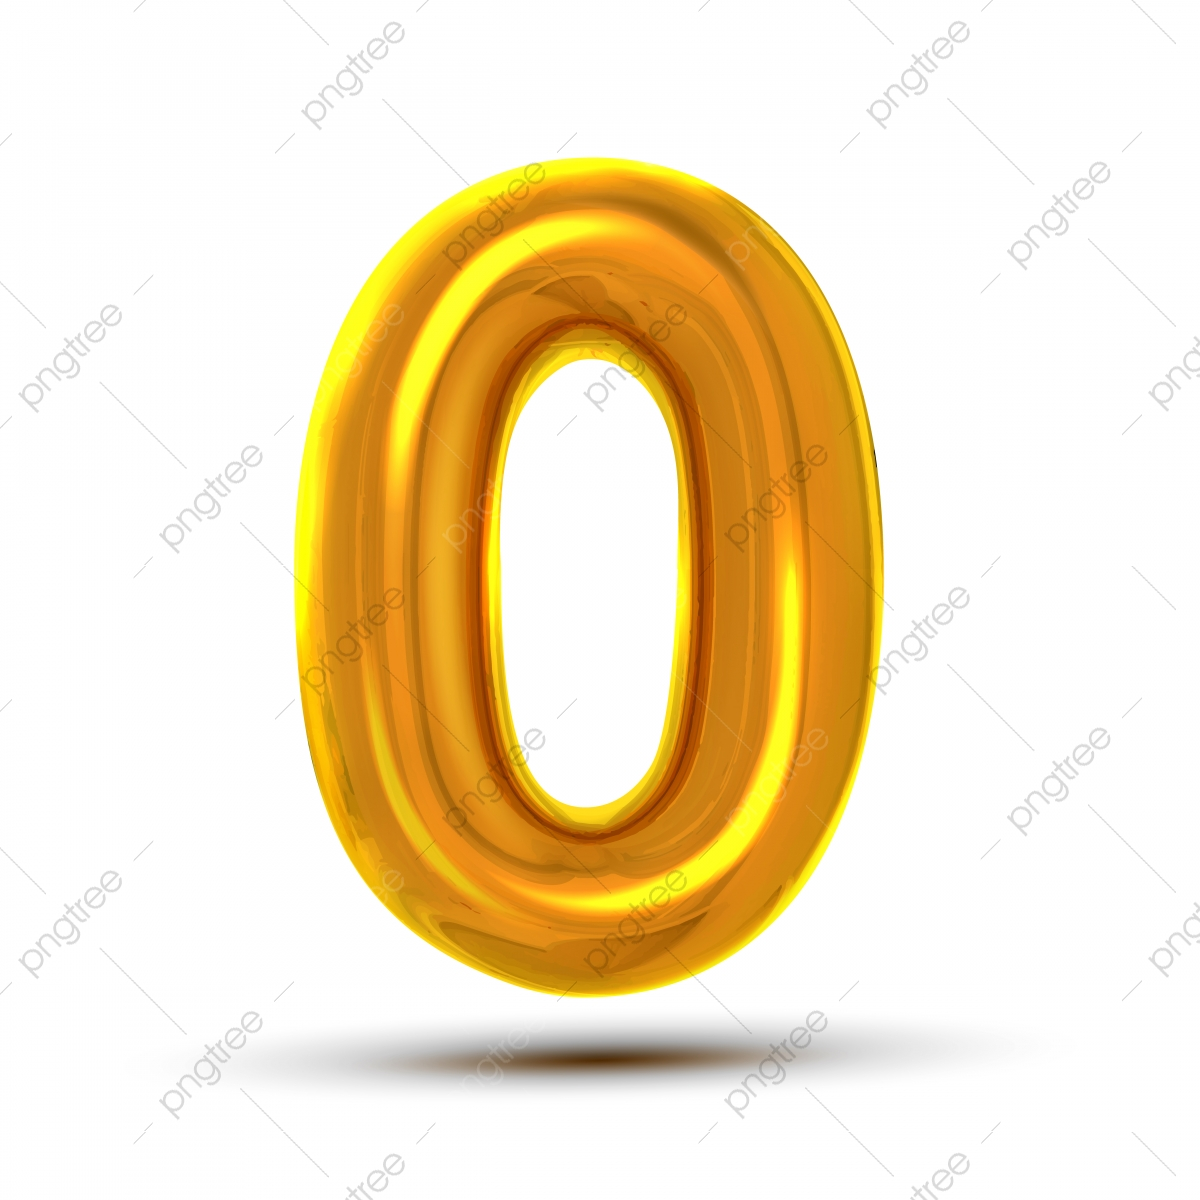 https://png.pngtree.com/png-clipart/20191121/original/pngtree-zero-number-vector-golden-yellow-metal-letter-figure-digit-numeric-png-image_5138946.jpg